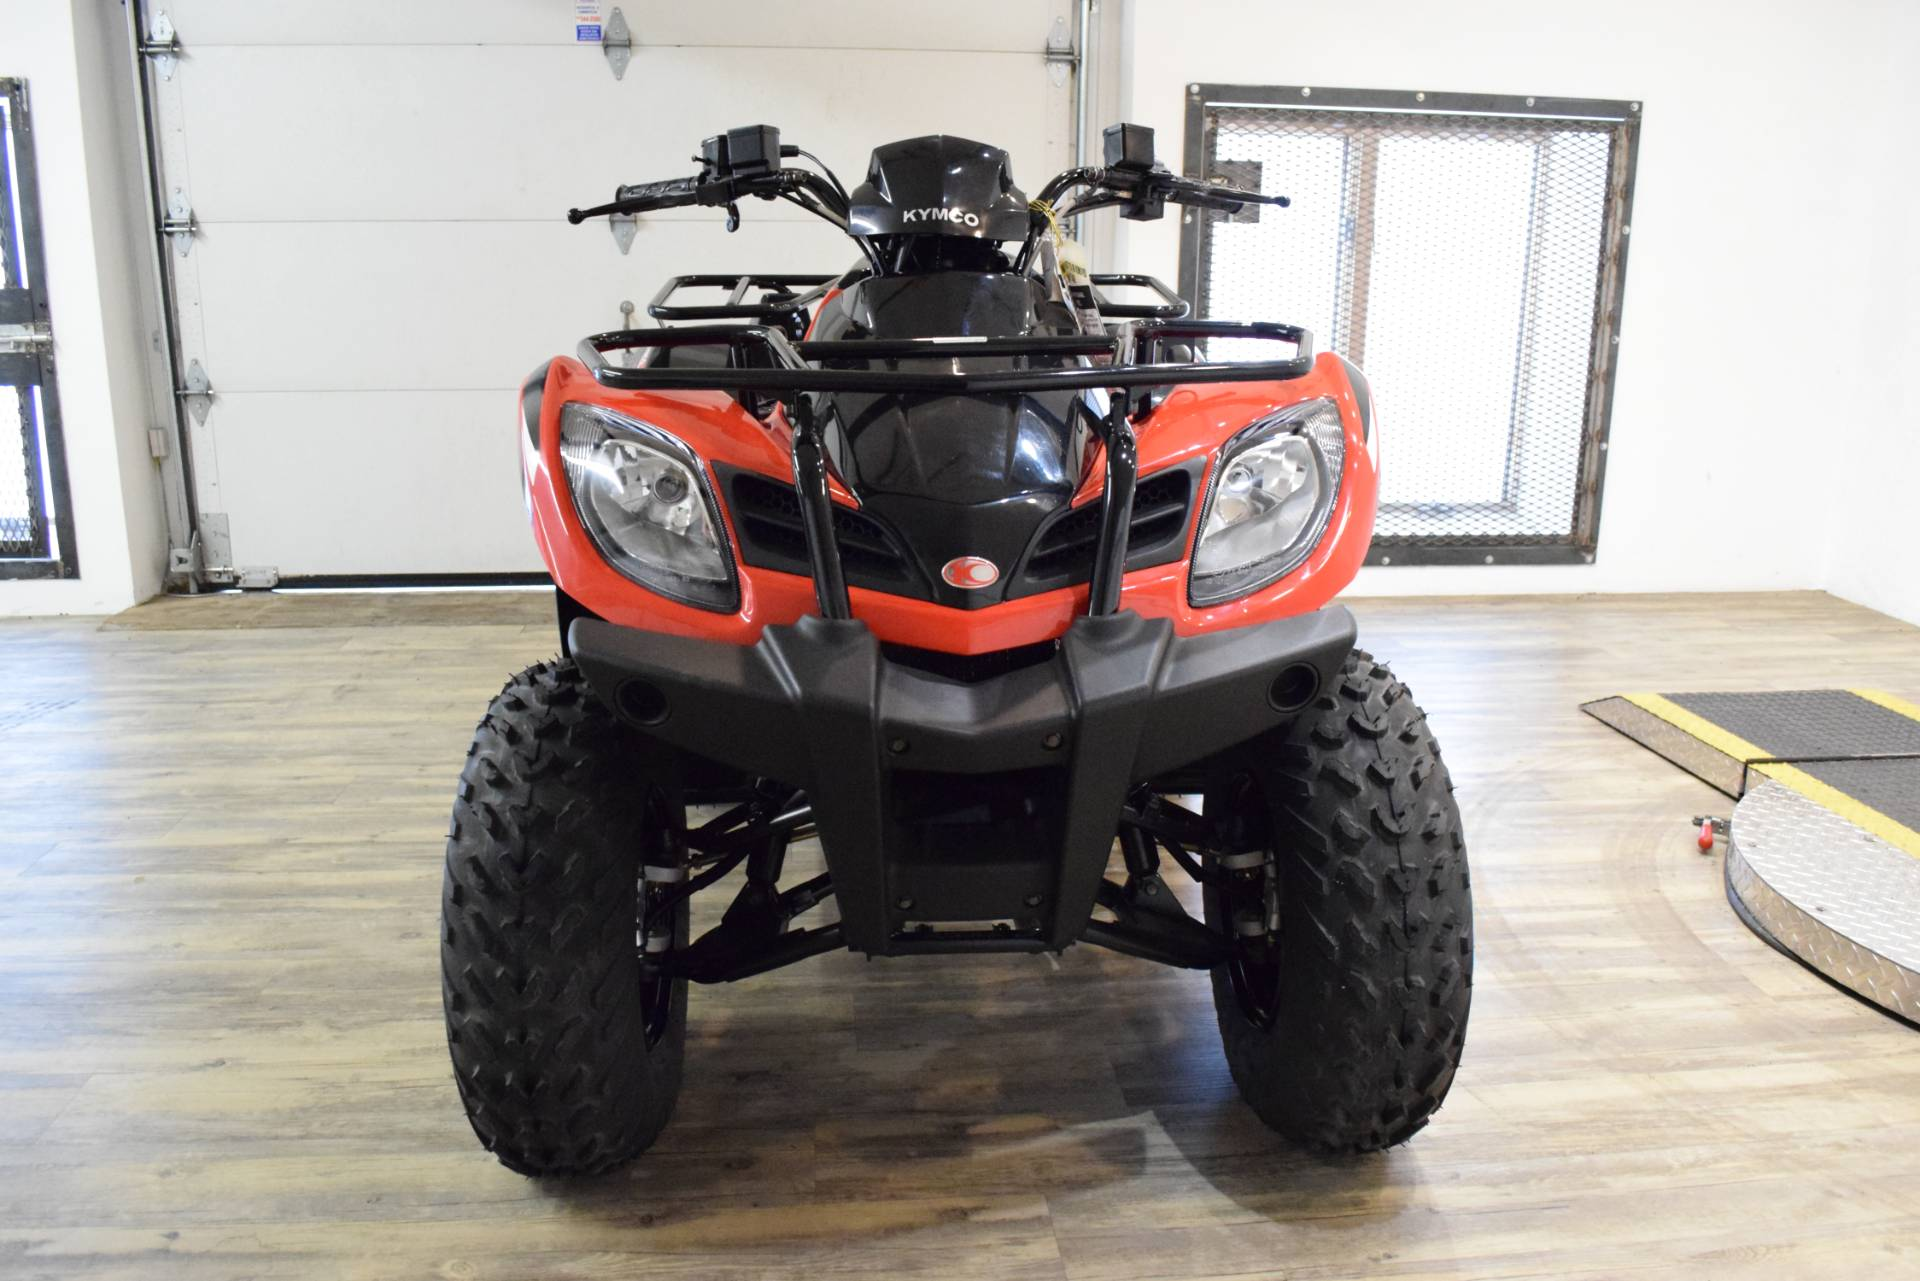 2017 Kymco MXU 270 in Wauconda, Illinois